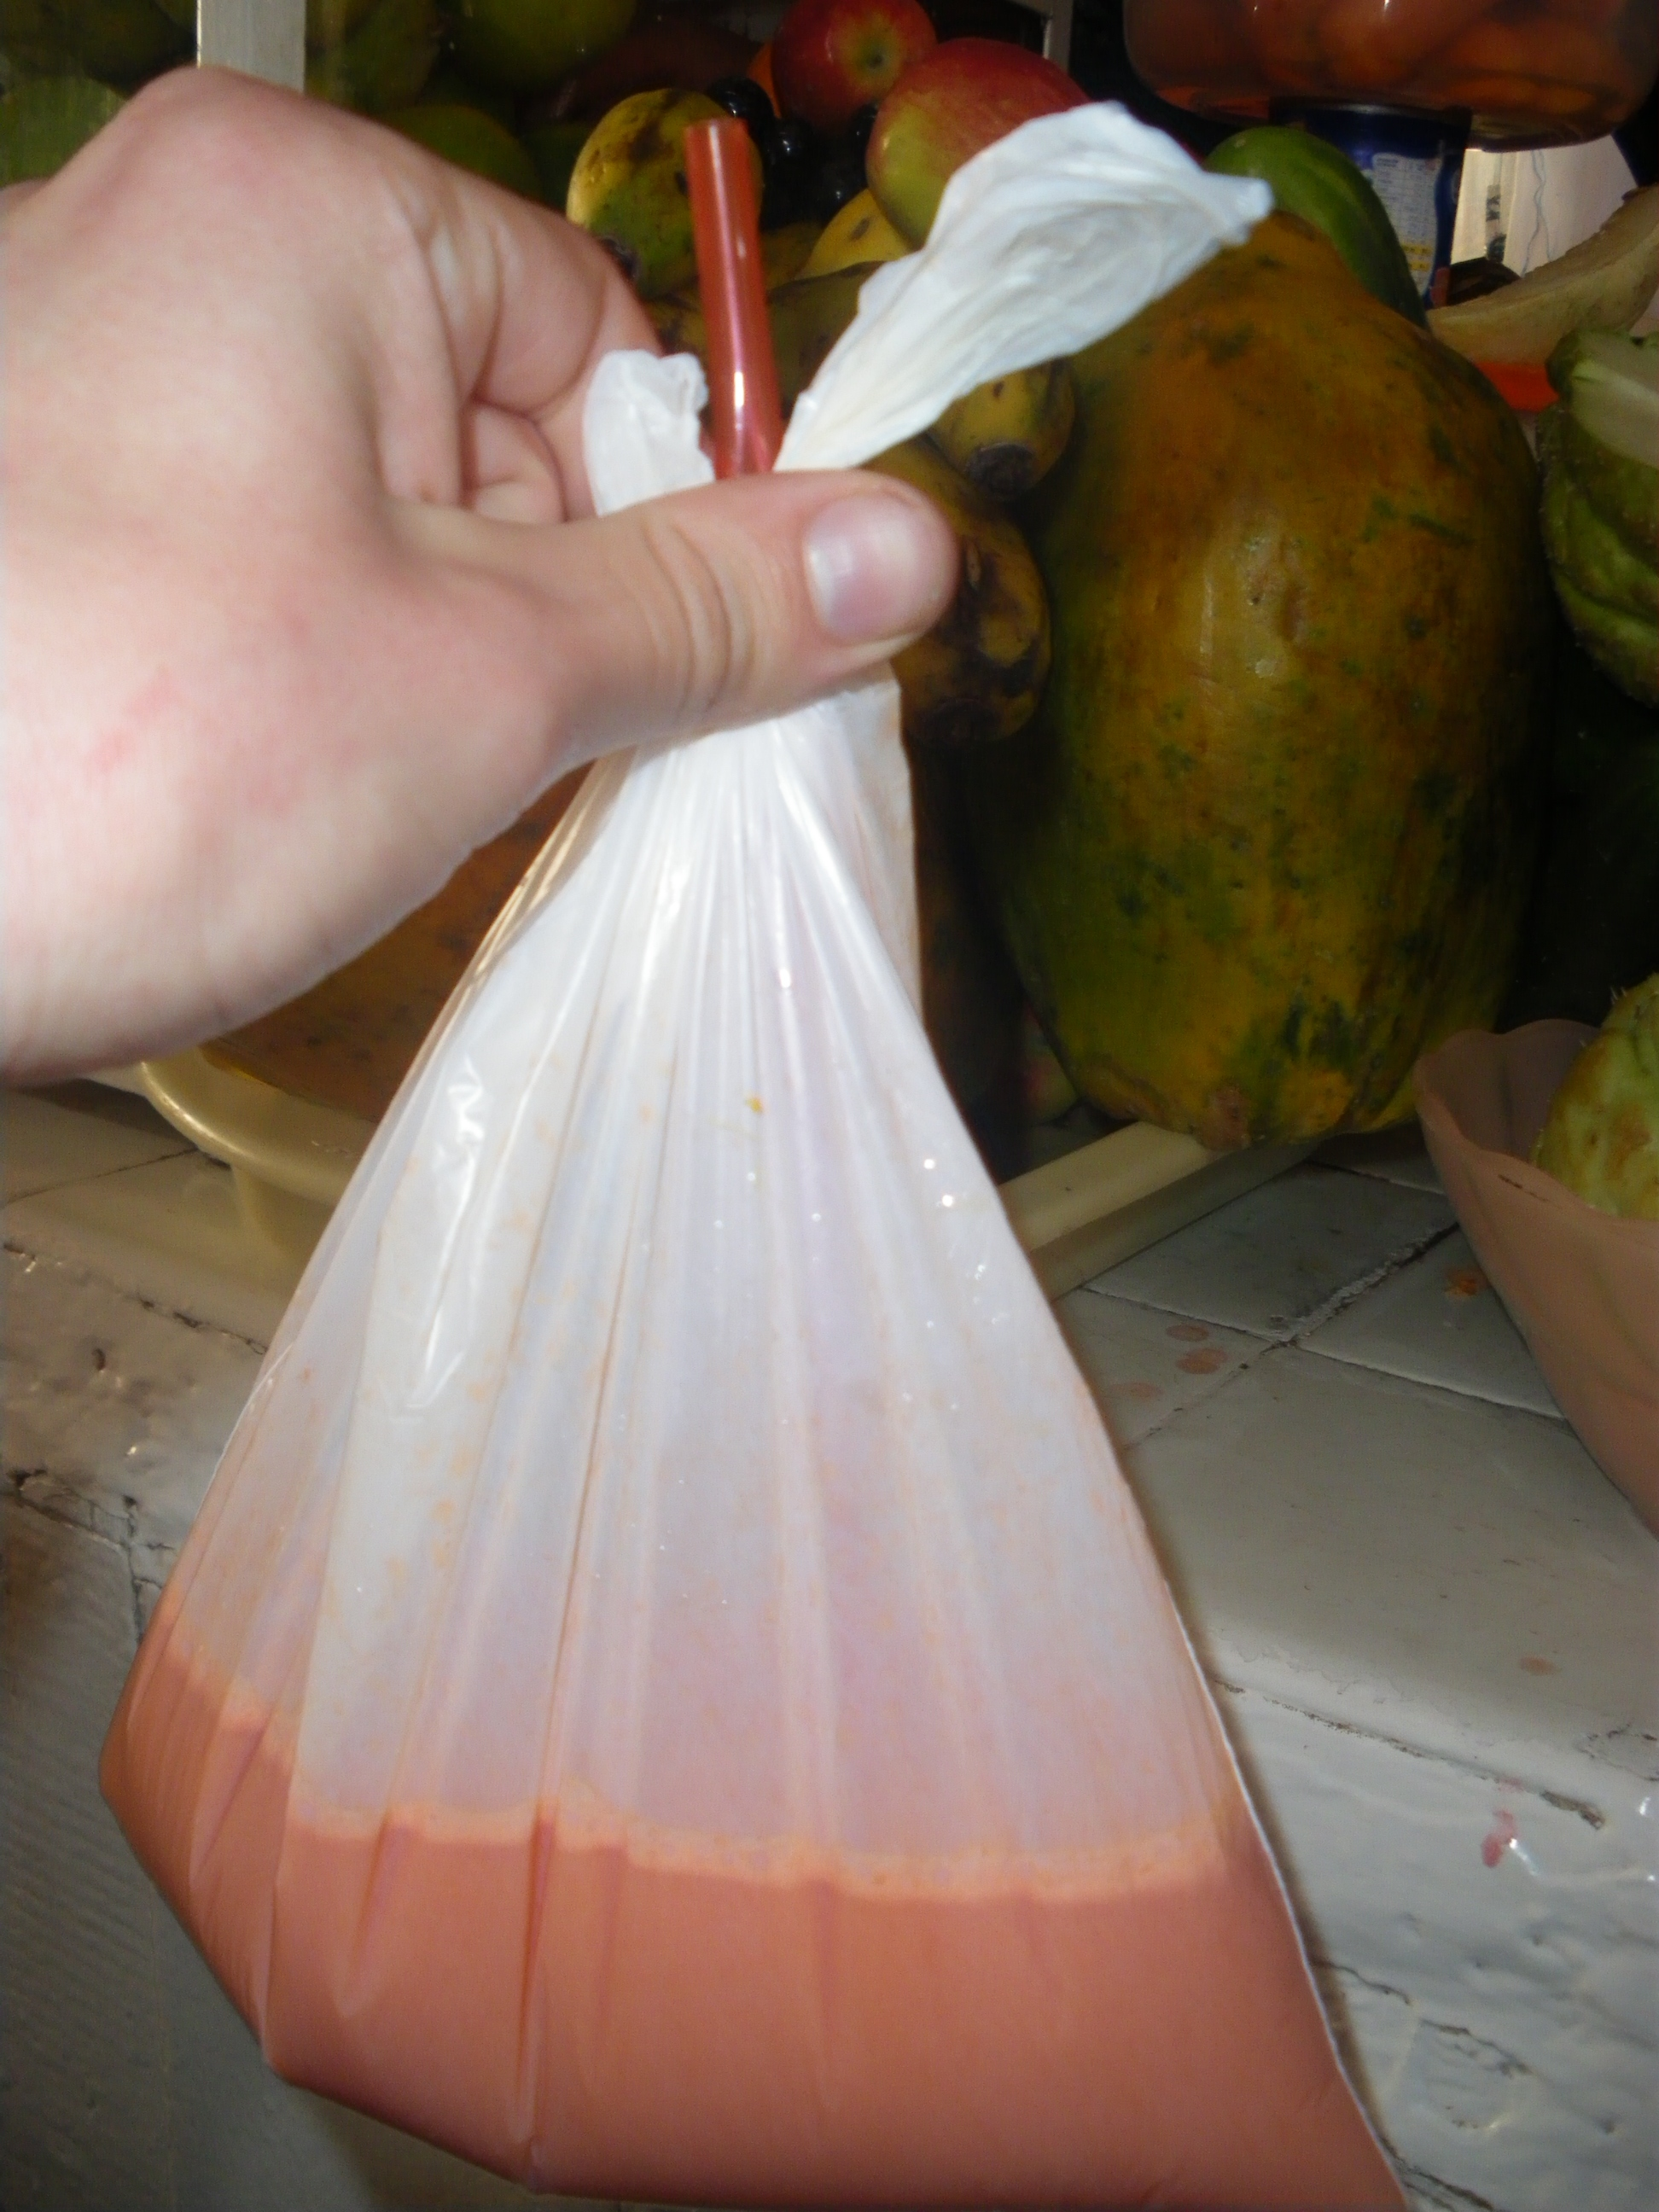 A sack of fresh squeezed orange-carrot juice.  To-go in Peru means in a bag, no matter what.